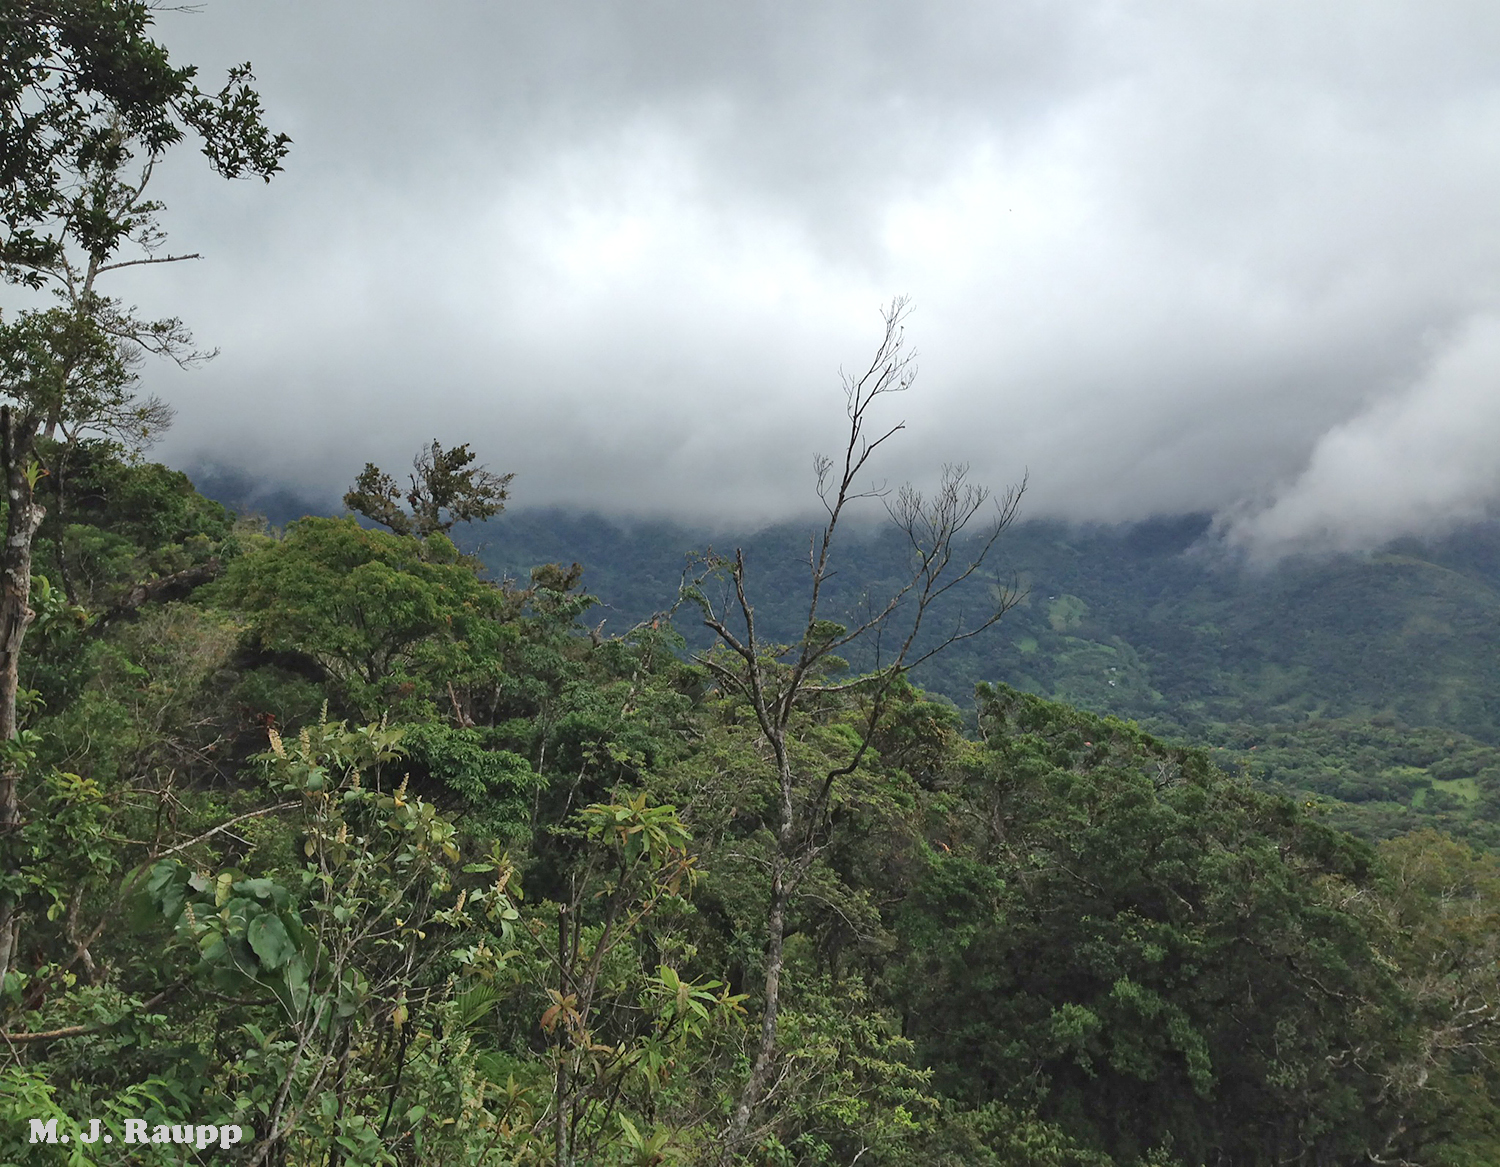 Moisture laden air from the lowlands condenses at higher elevations to form a cloud forest on a mountainside in Costa Rica. In a warming world what will be the fate of bio-rich cloud forests?